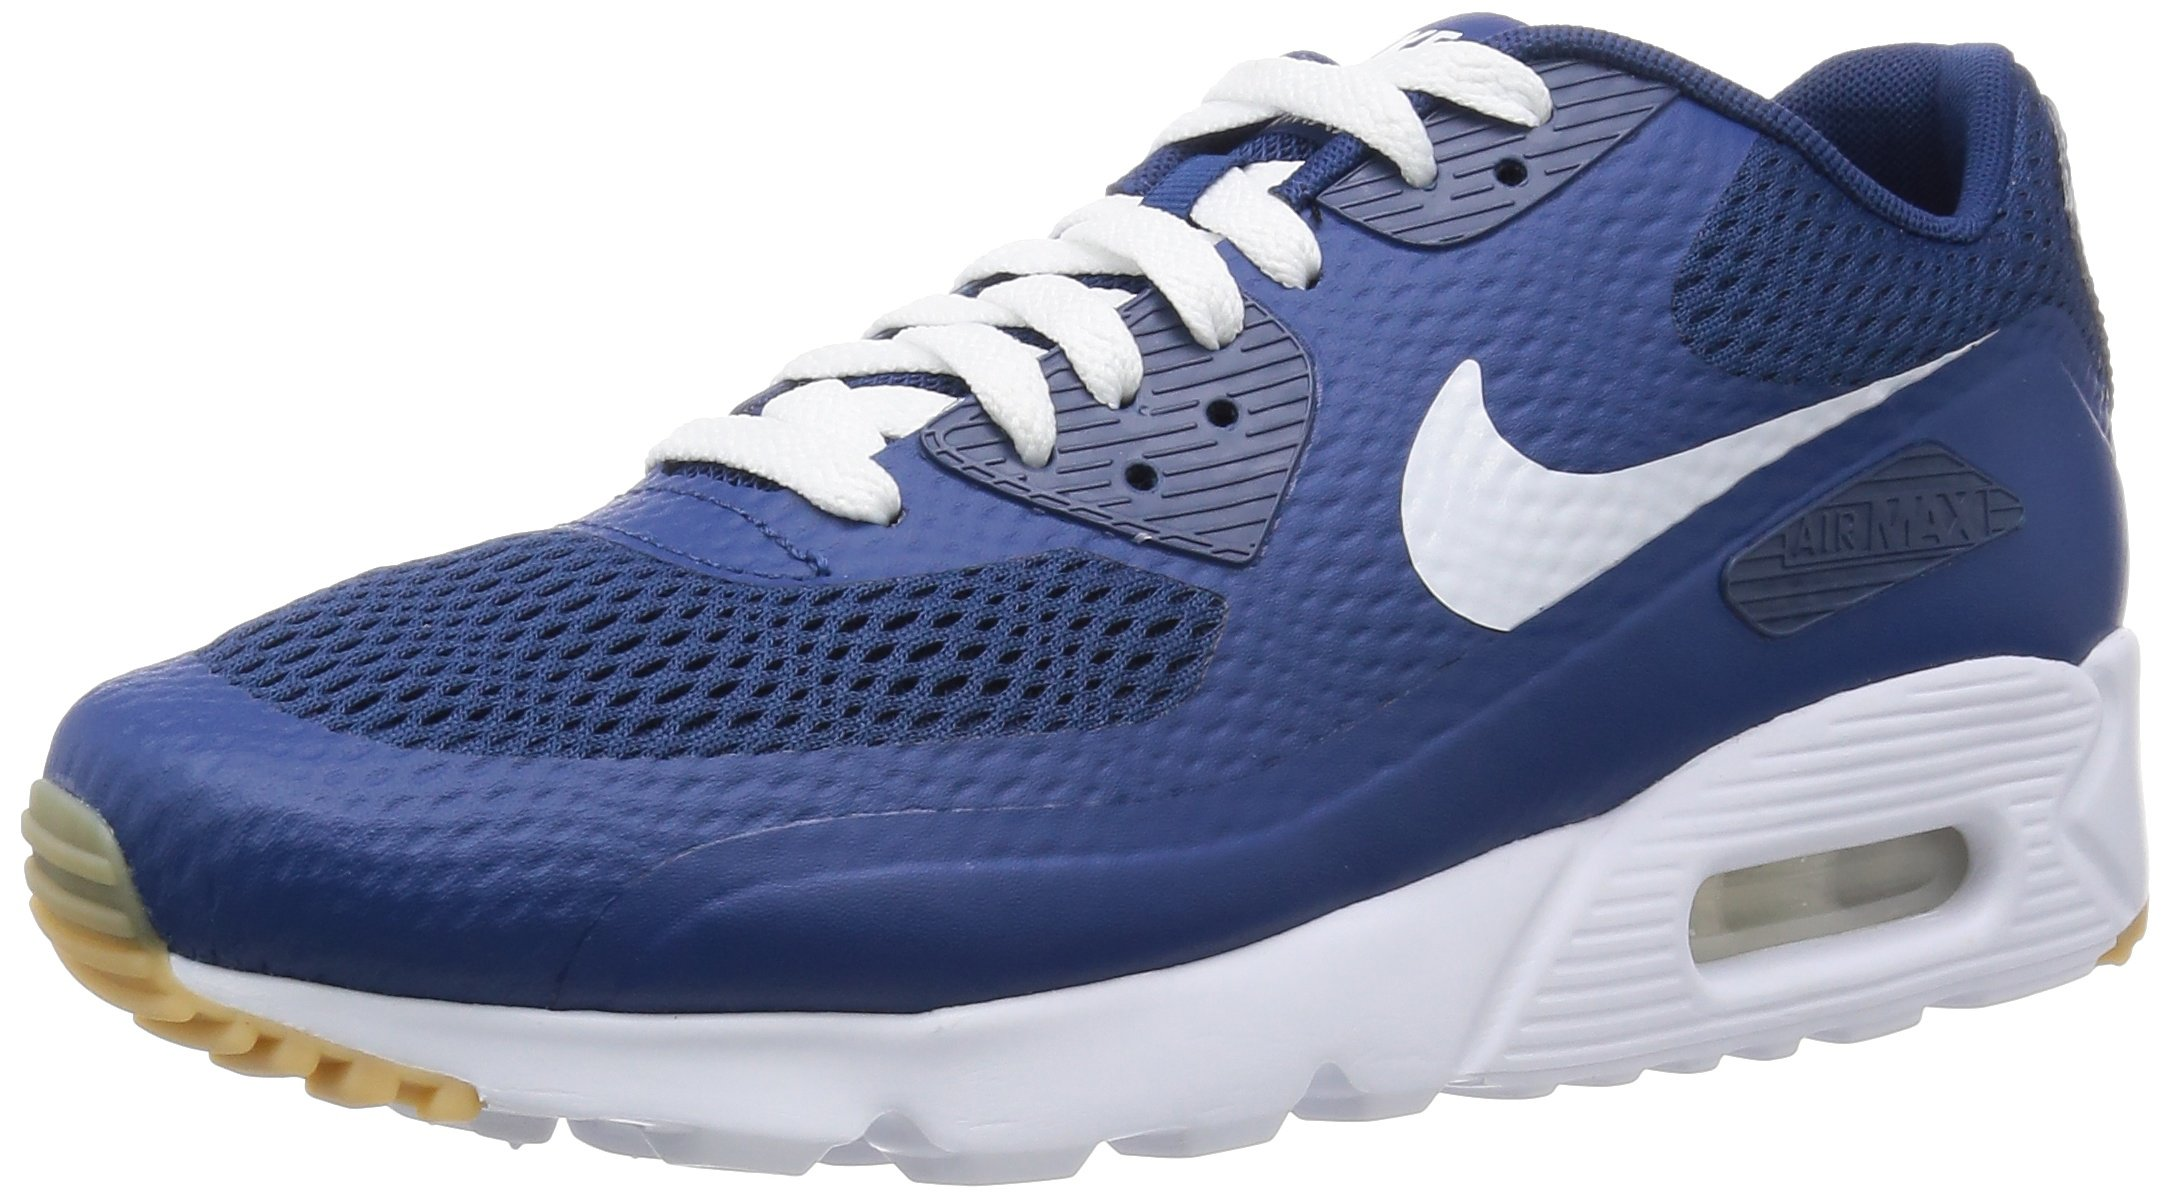 2806acd61737 ... usa galleon nike air max 90 ultra essential mens trainers 819474  sneakers shoes 44 coastal blue